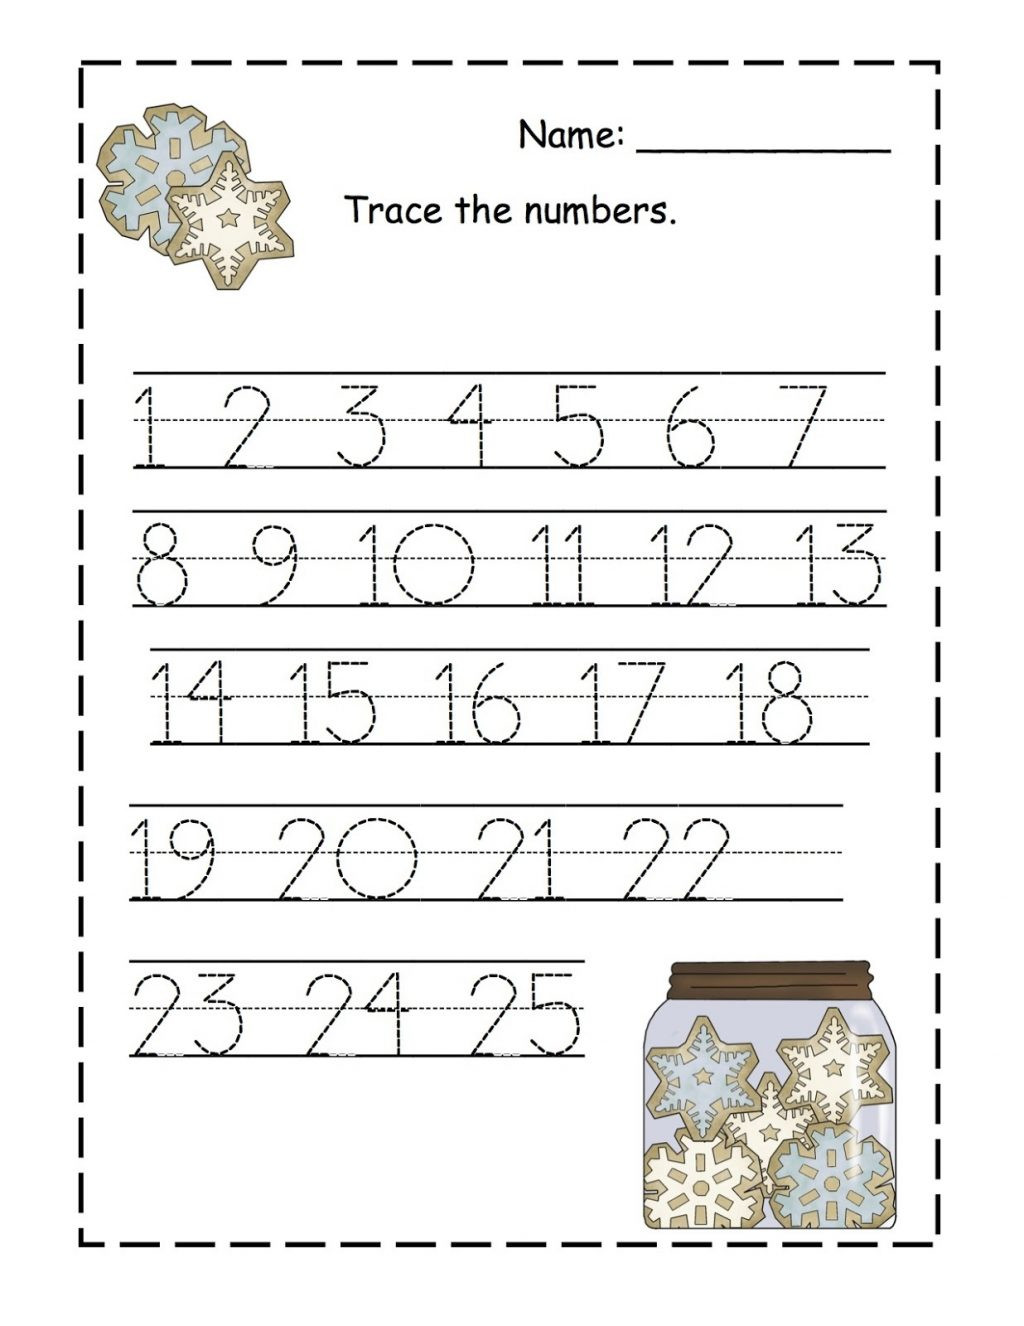 Preschool Number Tracing Worksheet Worksheet Preschool Printing Worksheets Fabulous